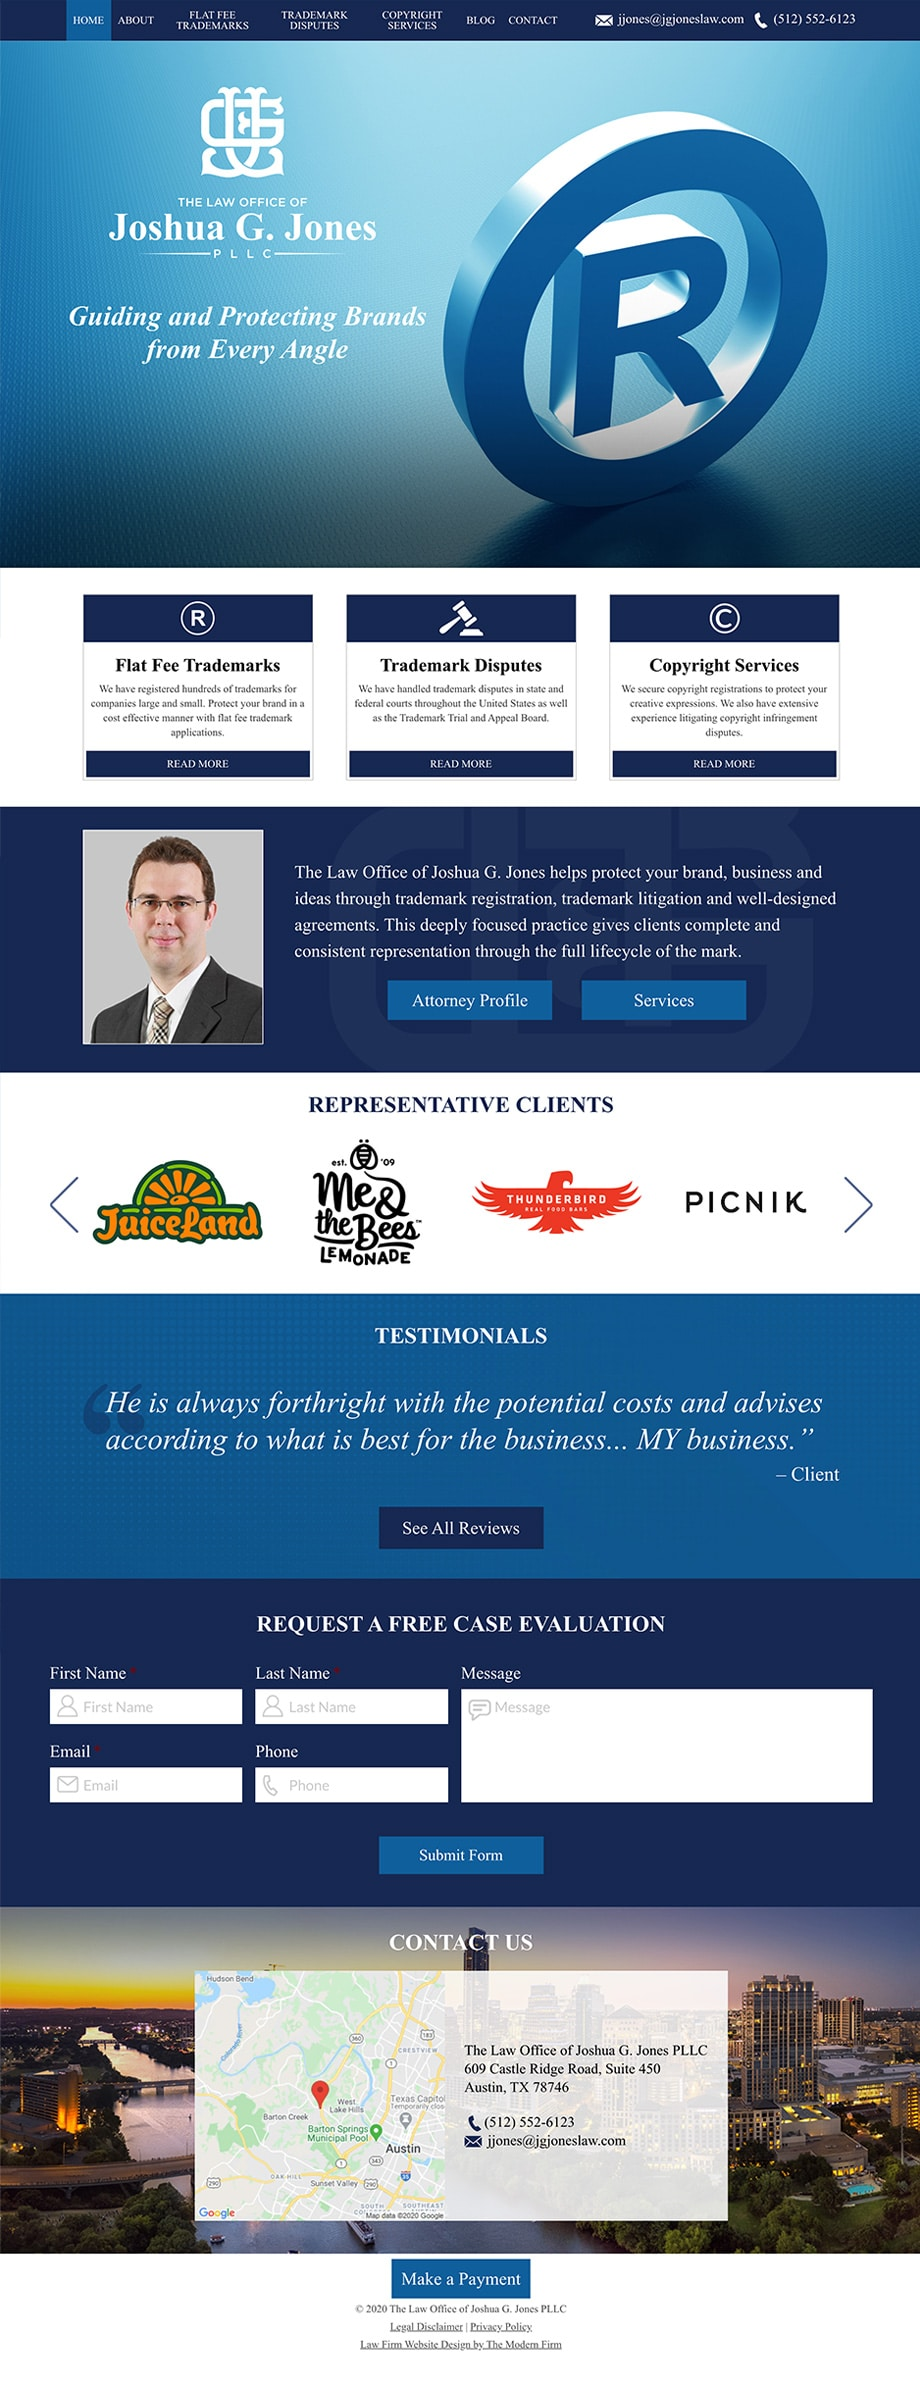 Law Firm Website Design for The Law Office of Joshua G. Jones PLLC